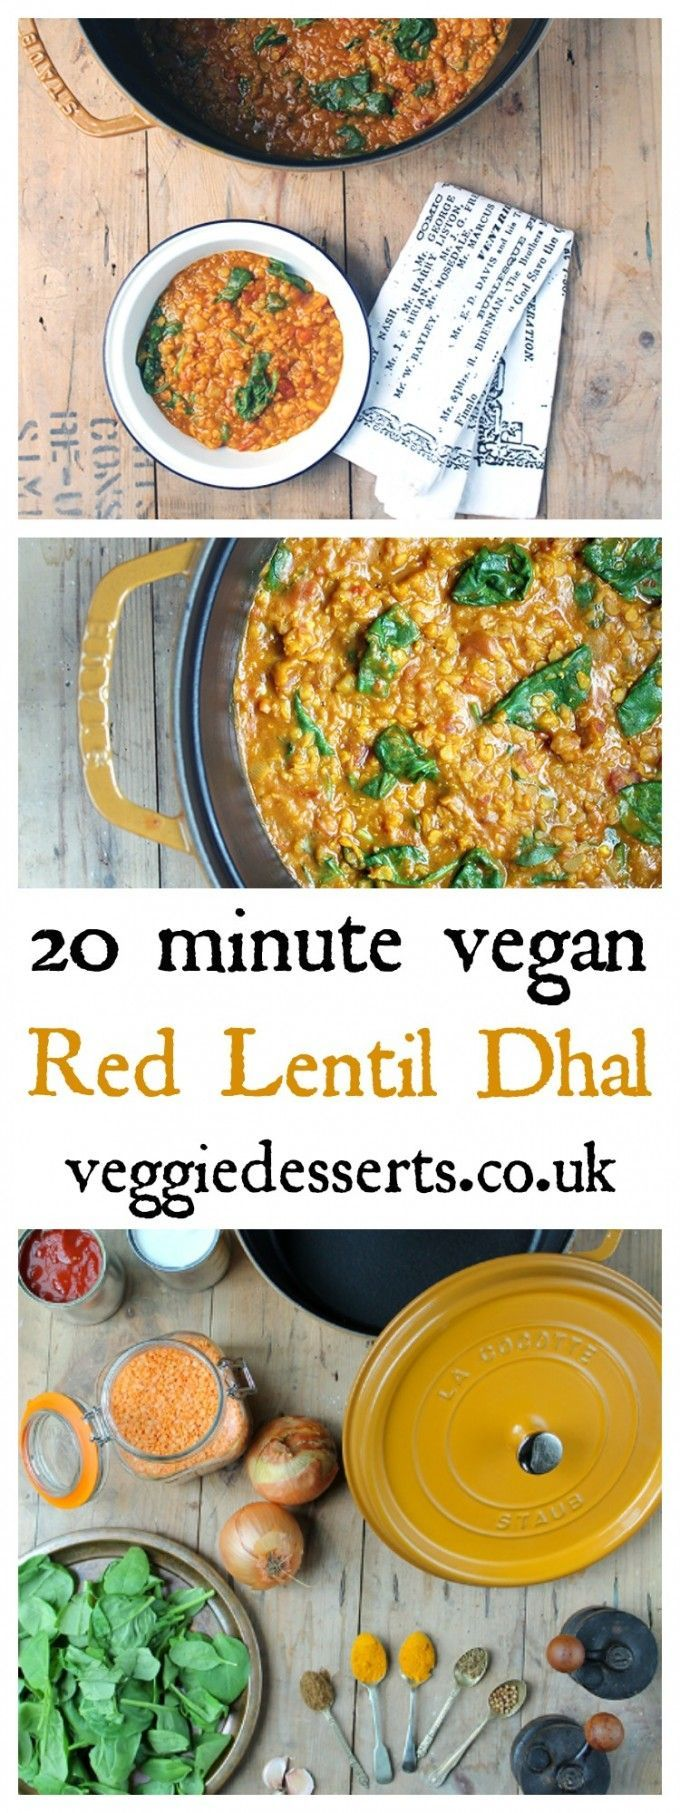 Red Lentil Dhal | Vegan | 20 minutes | Veggie Desserts Blog  Easy, cheap and so full of flavour!  veggiedesserts.co.uk